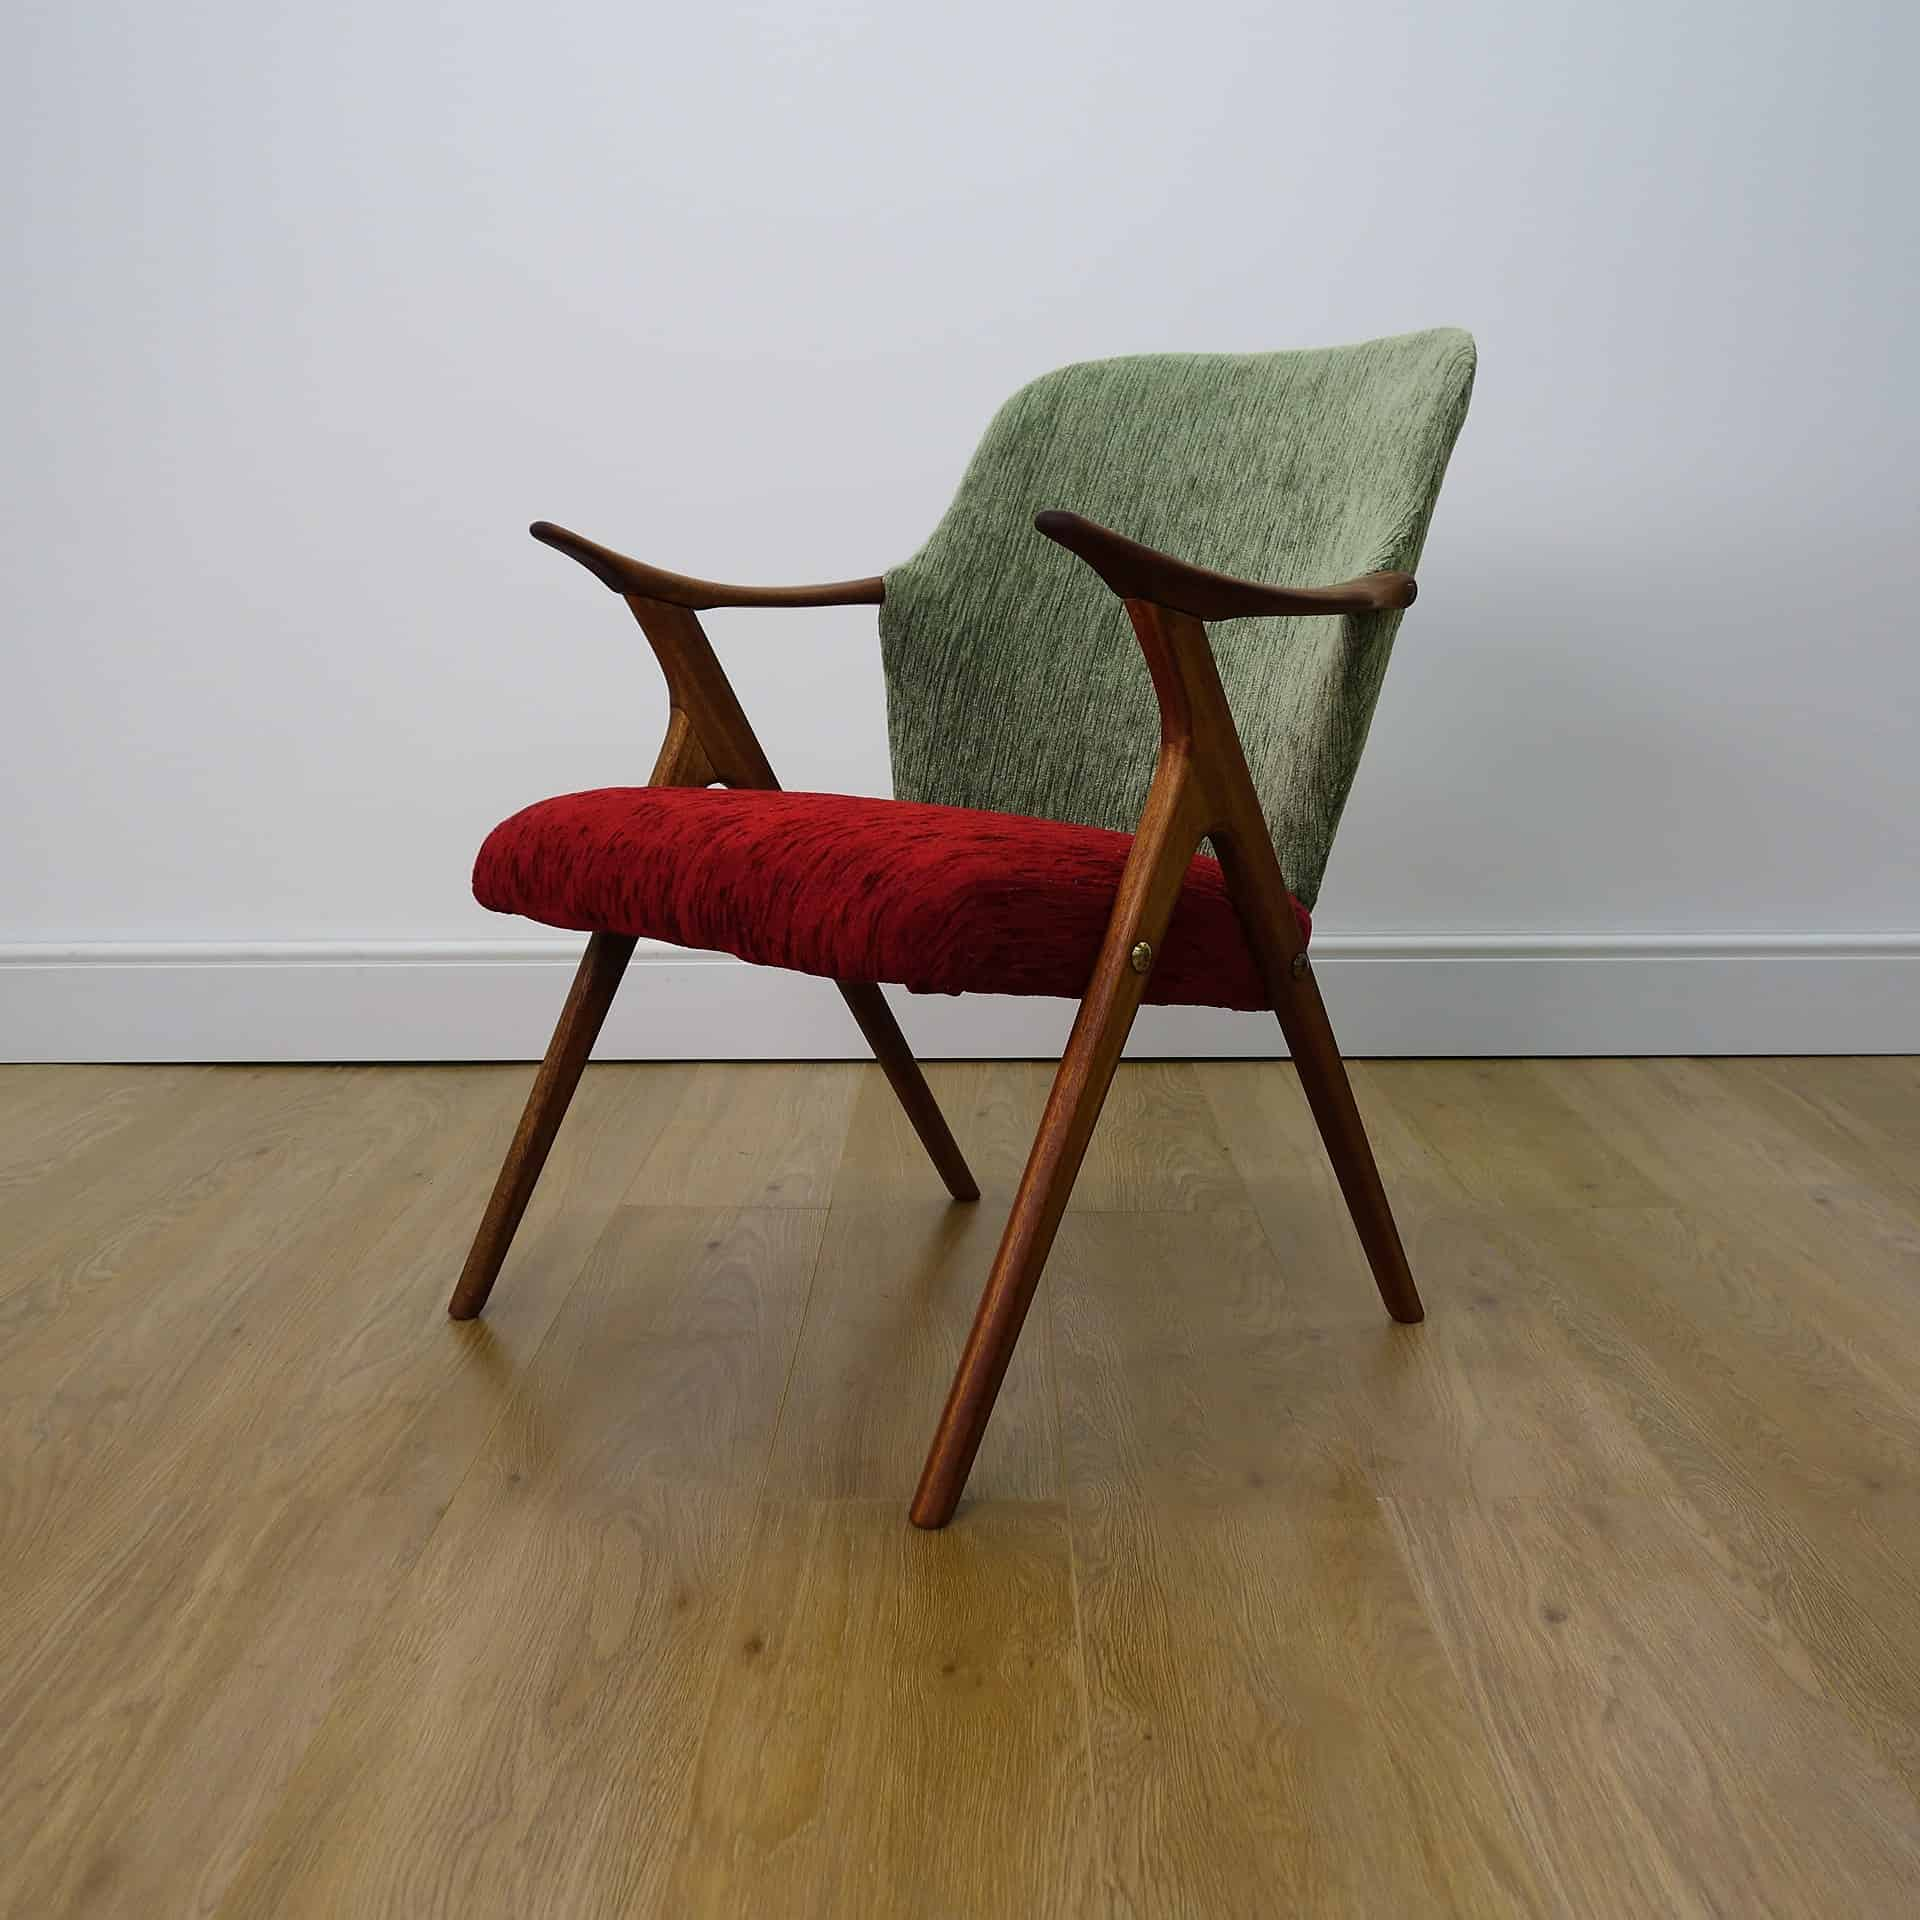 small arm chair wood office chairs 1950s danish teak mark parrish mid